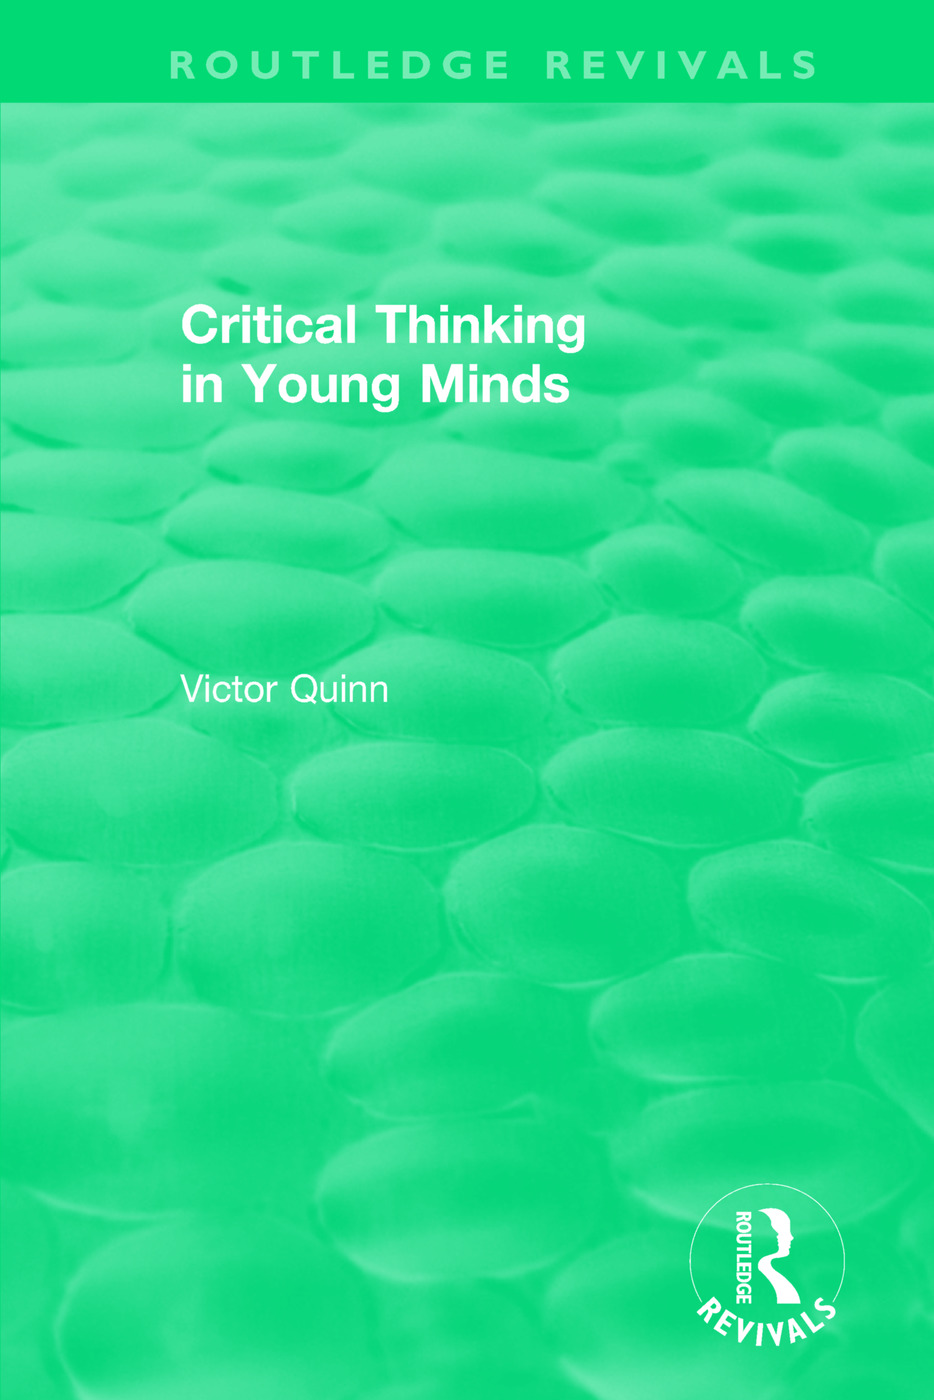 Critical Thinking in Young Minds